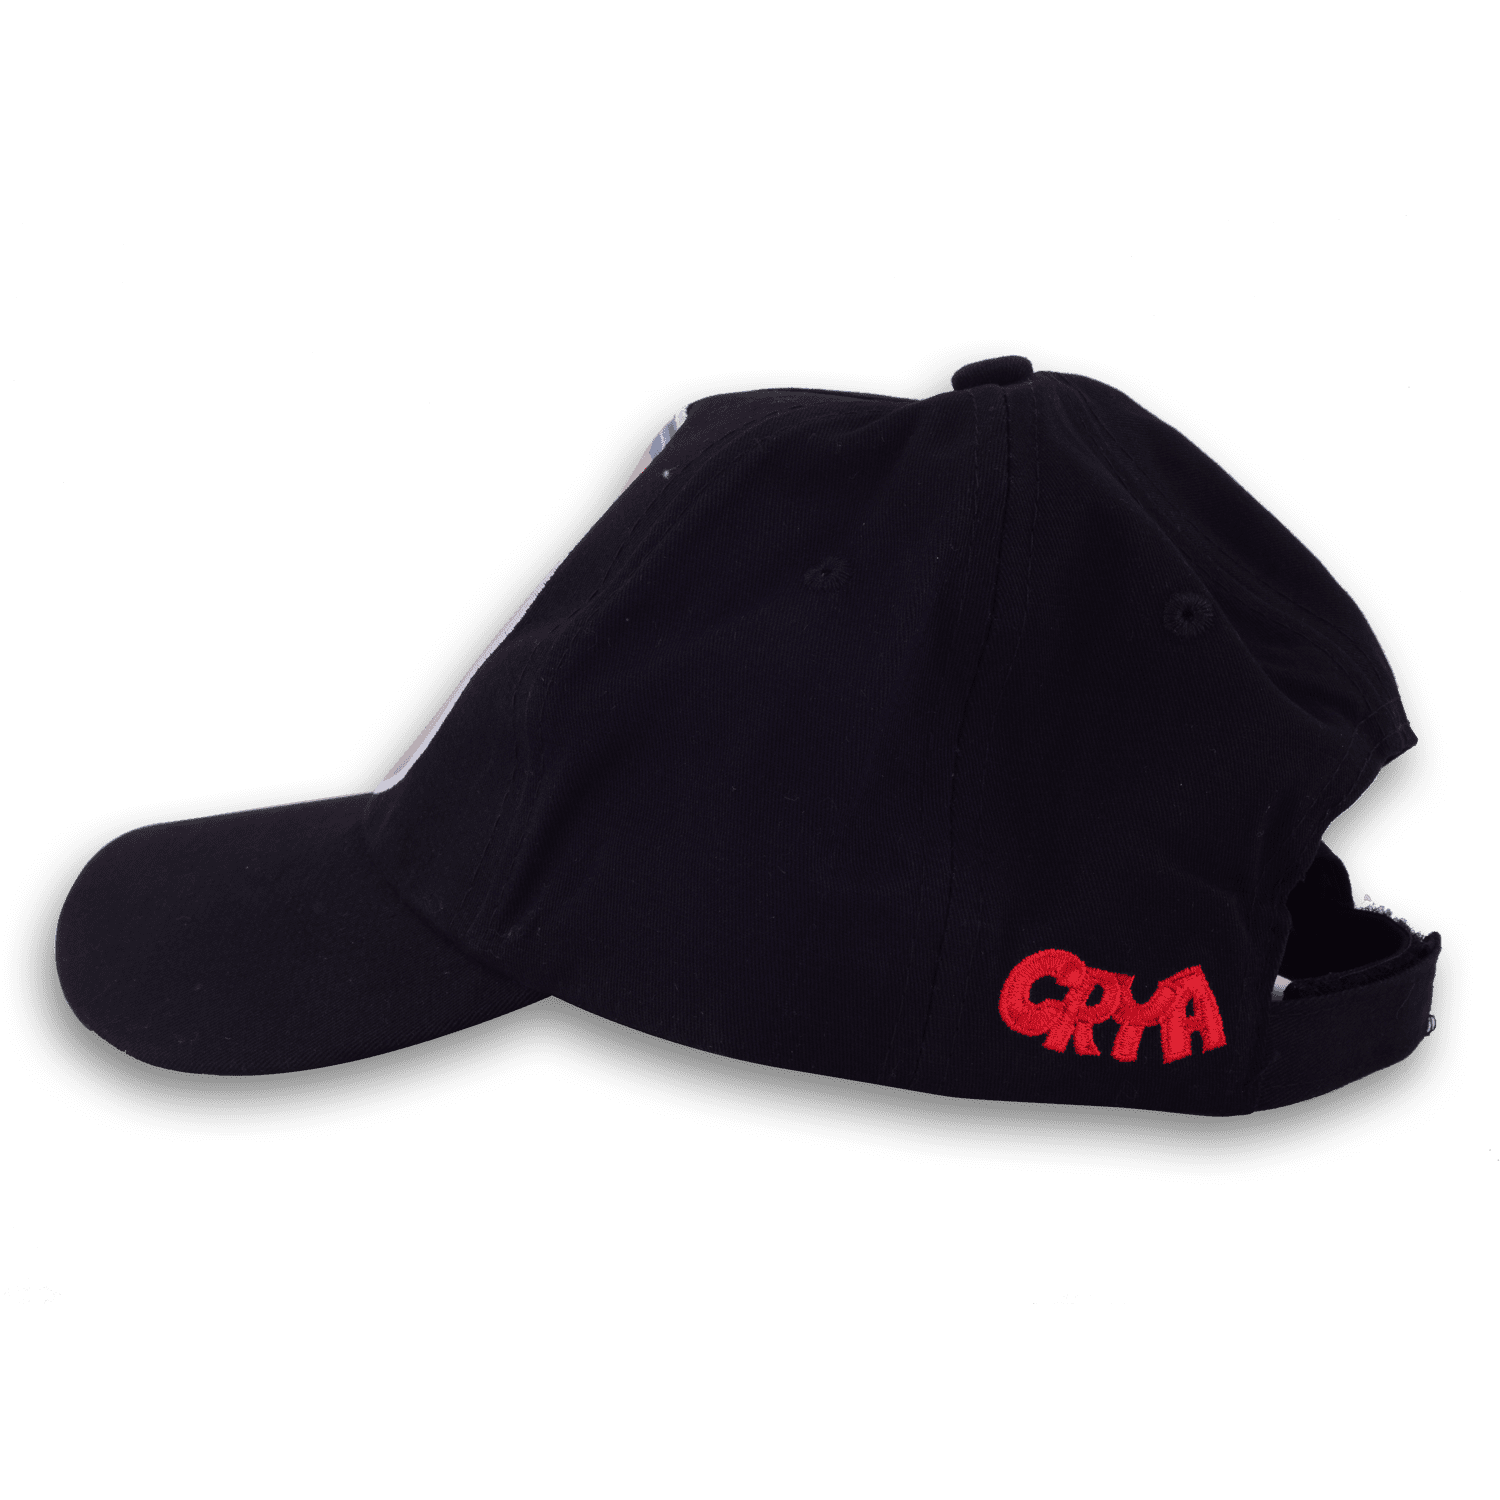 CRYA RISE AND SHINE CAP